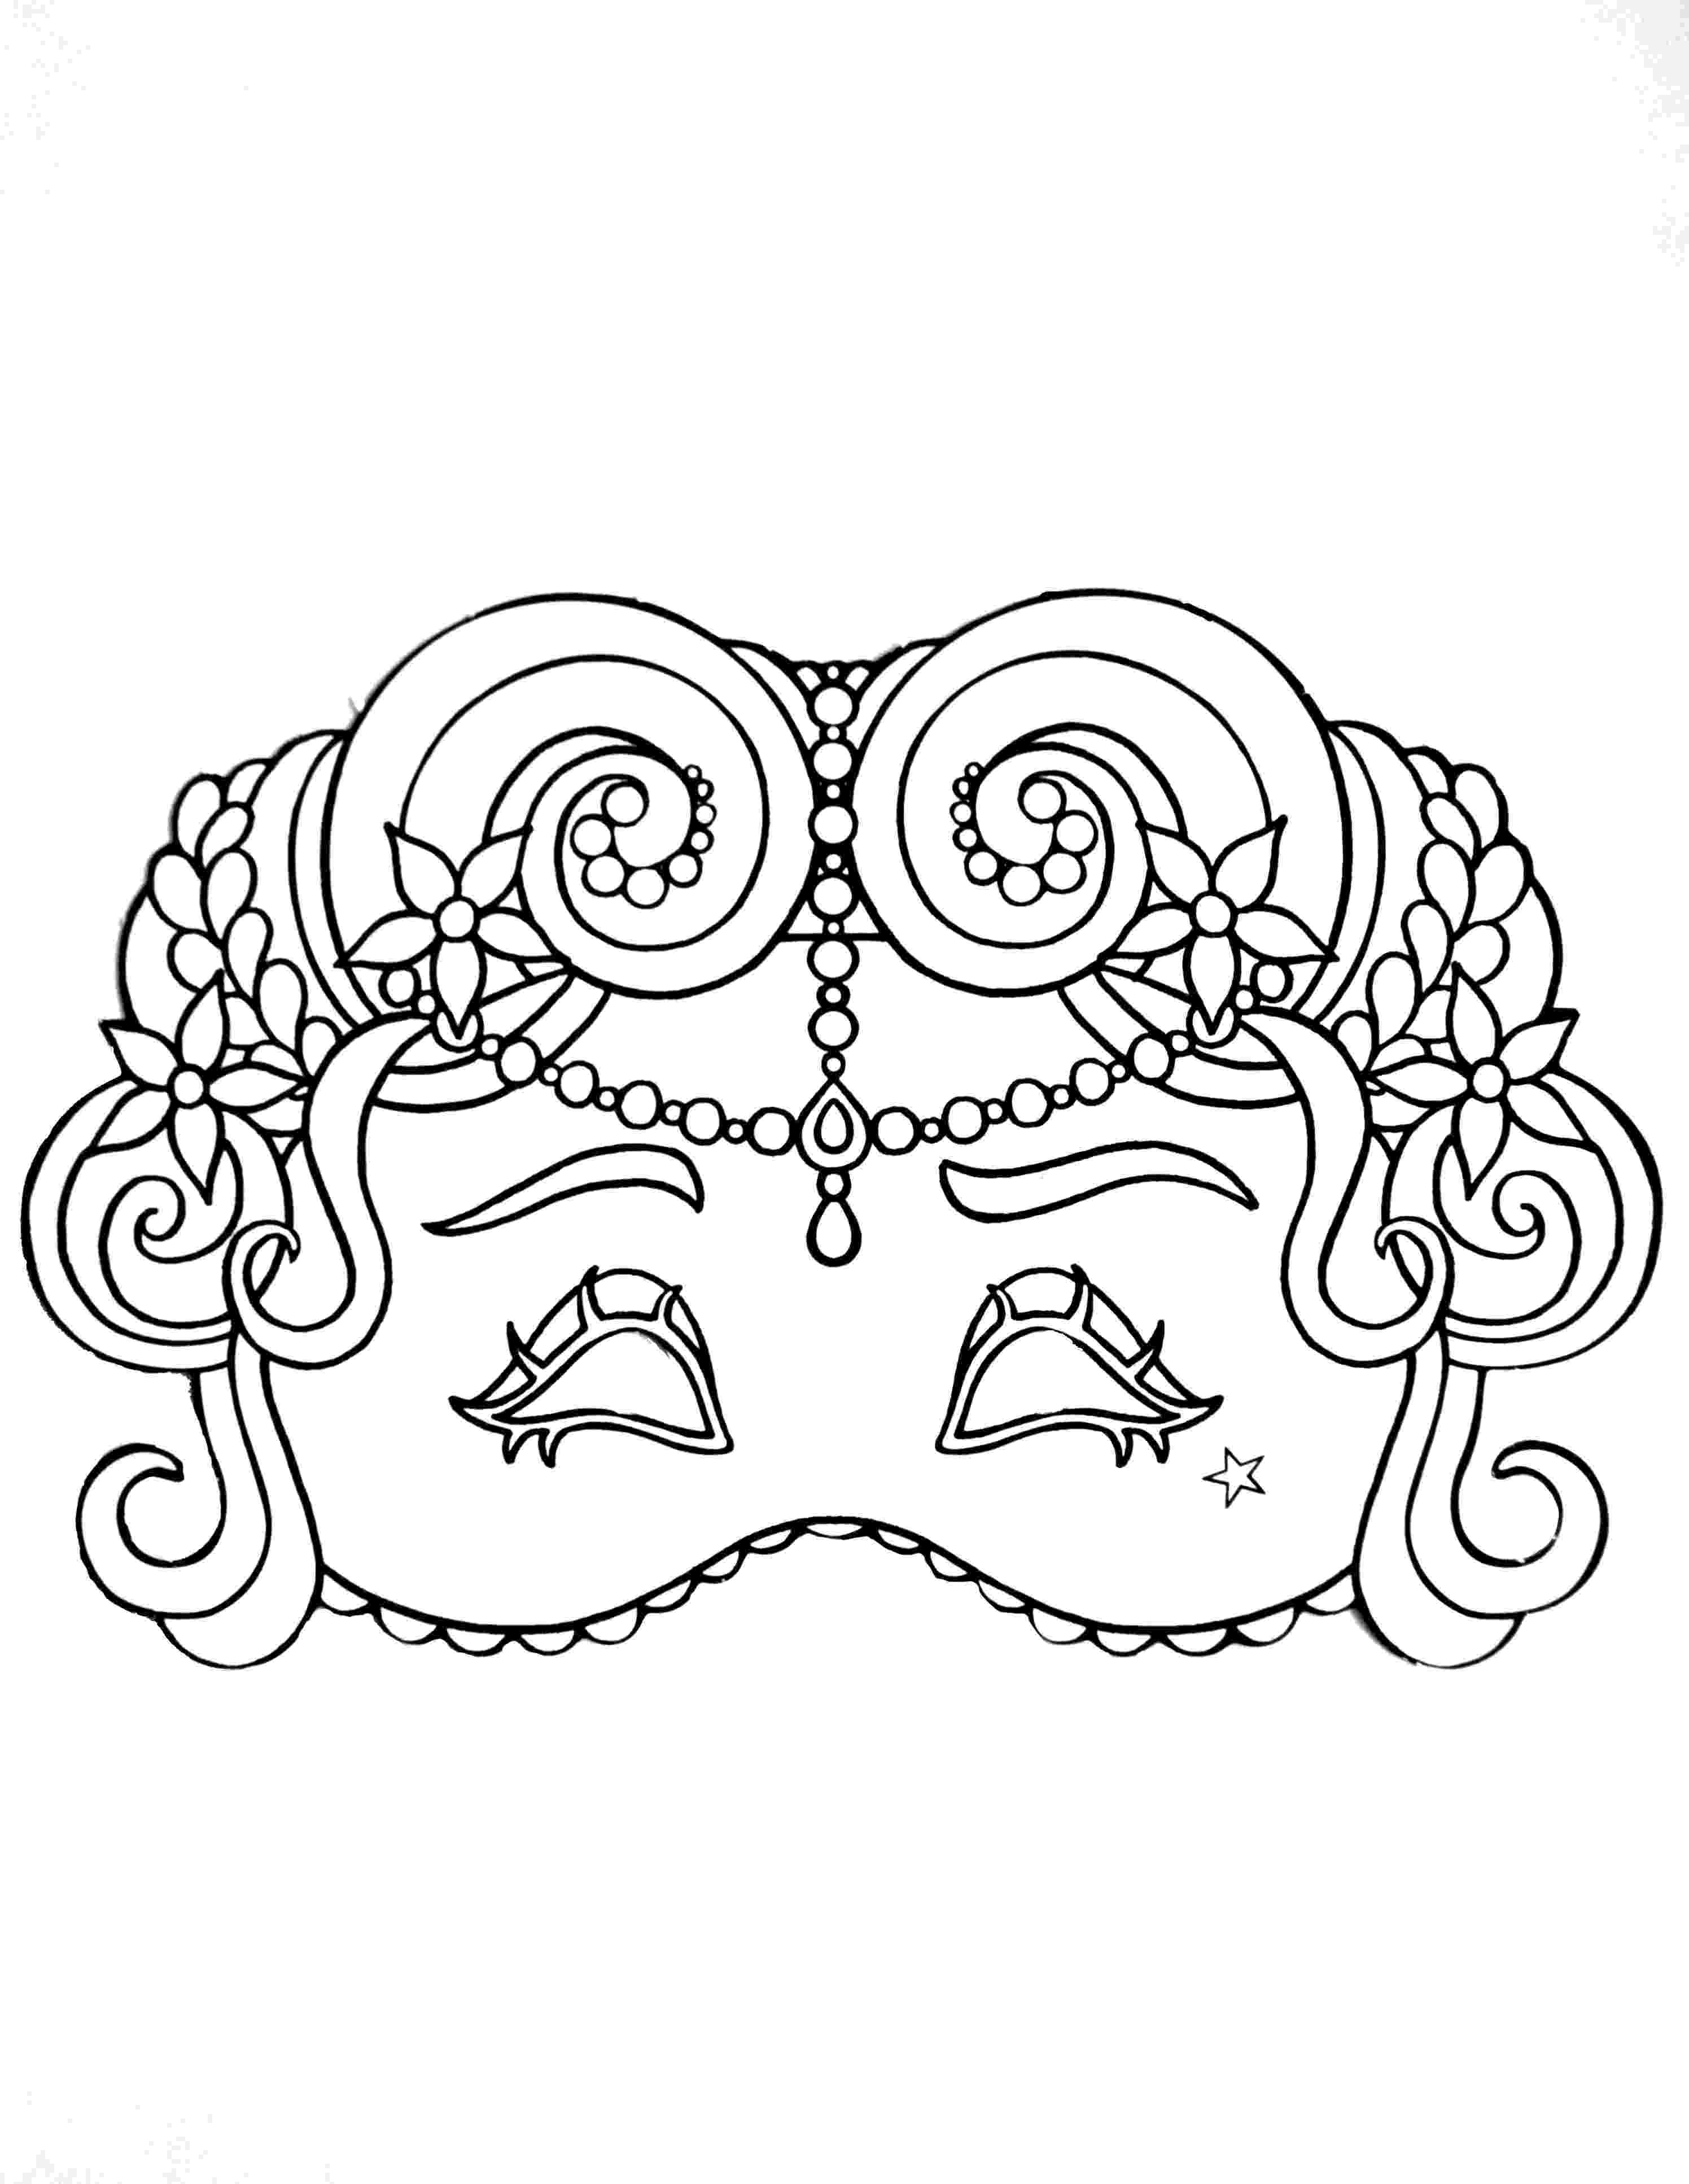 carnival mask coloring page coloriage masque vénitien vampire grande image coloriage carnival coloring mask page